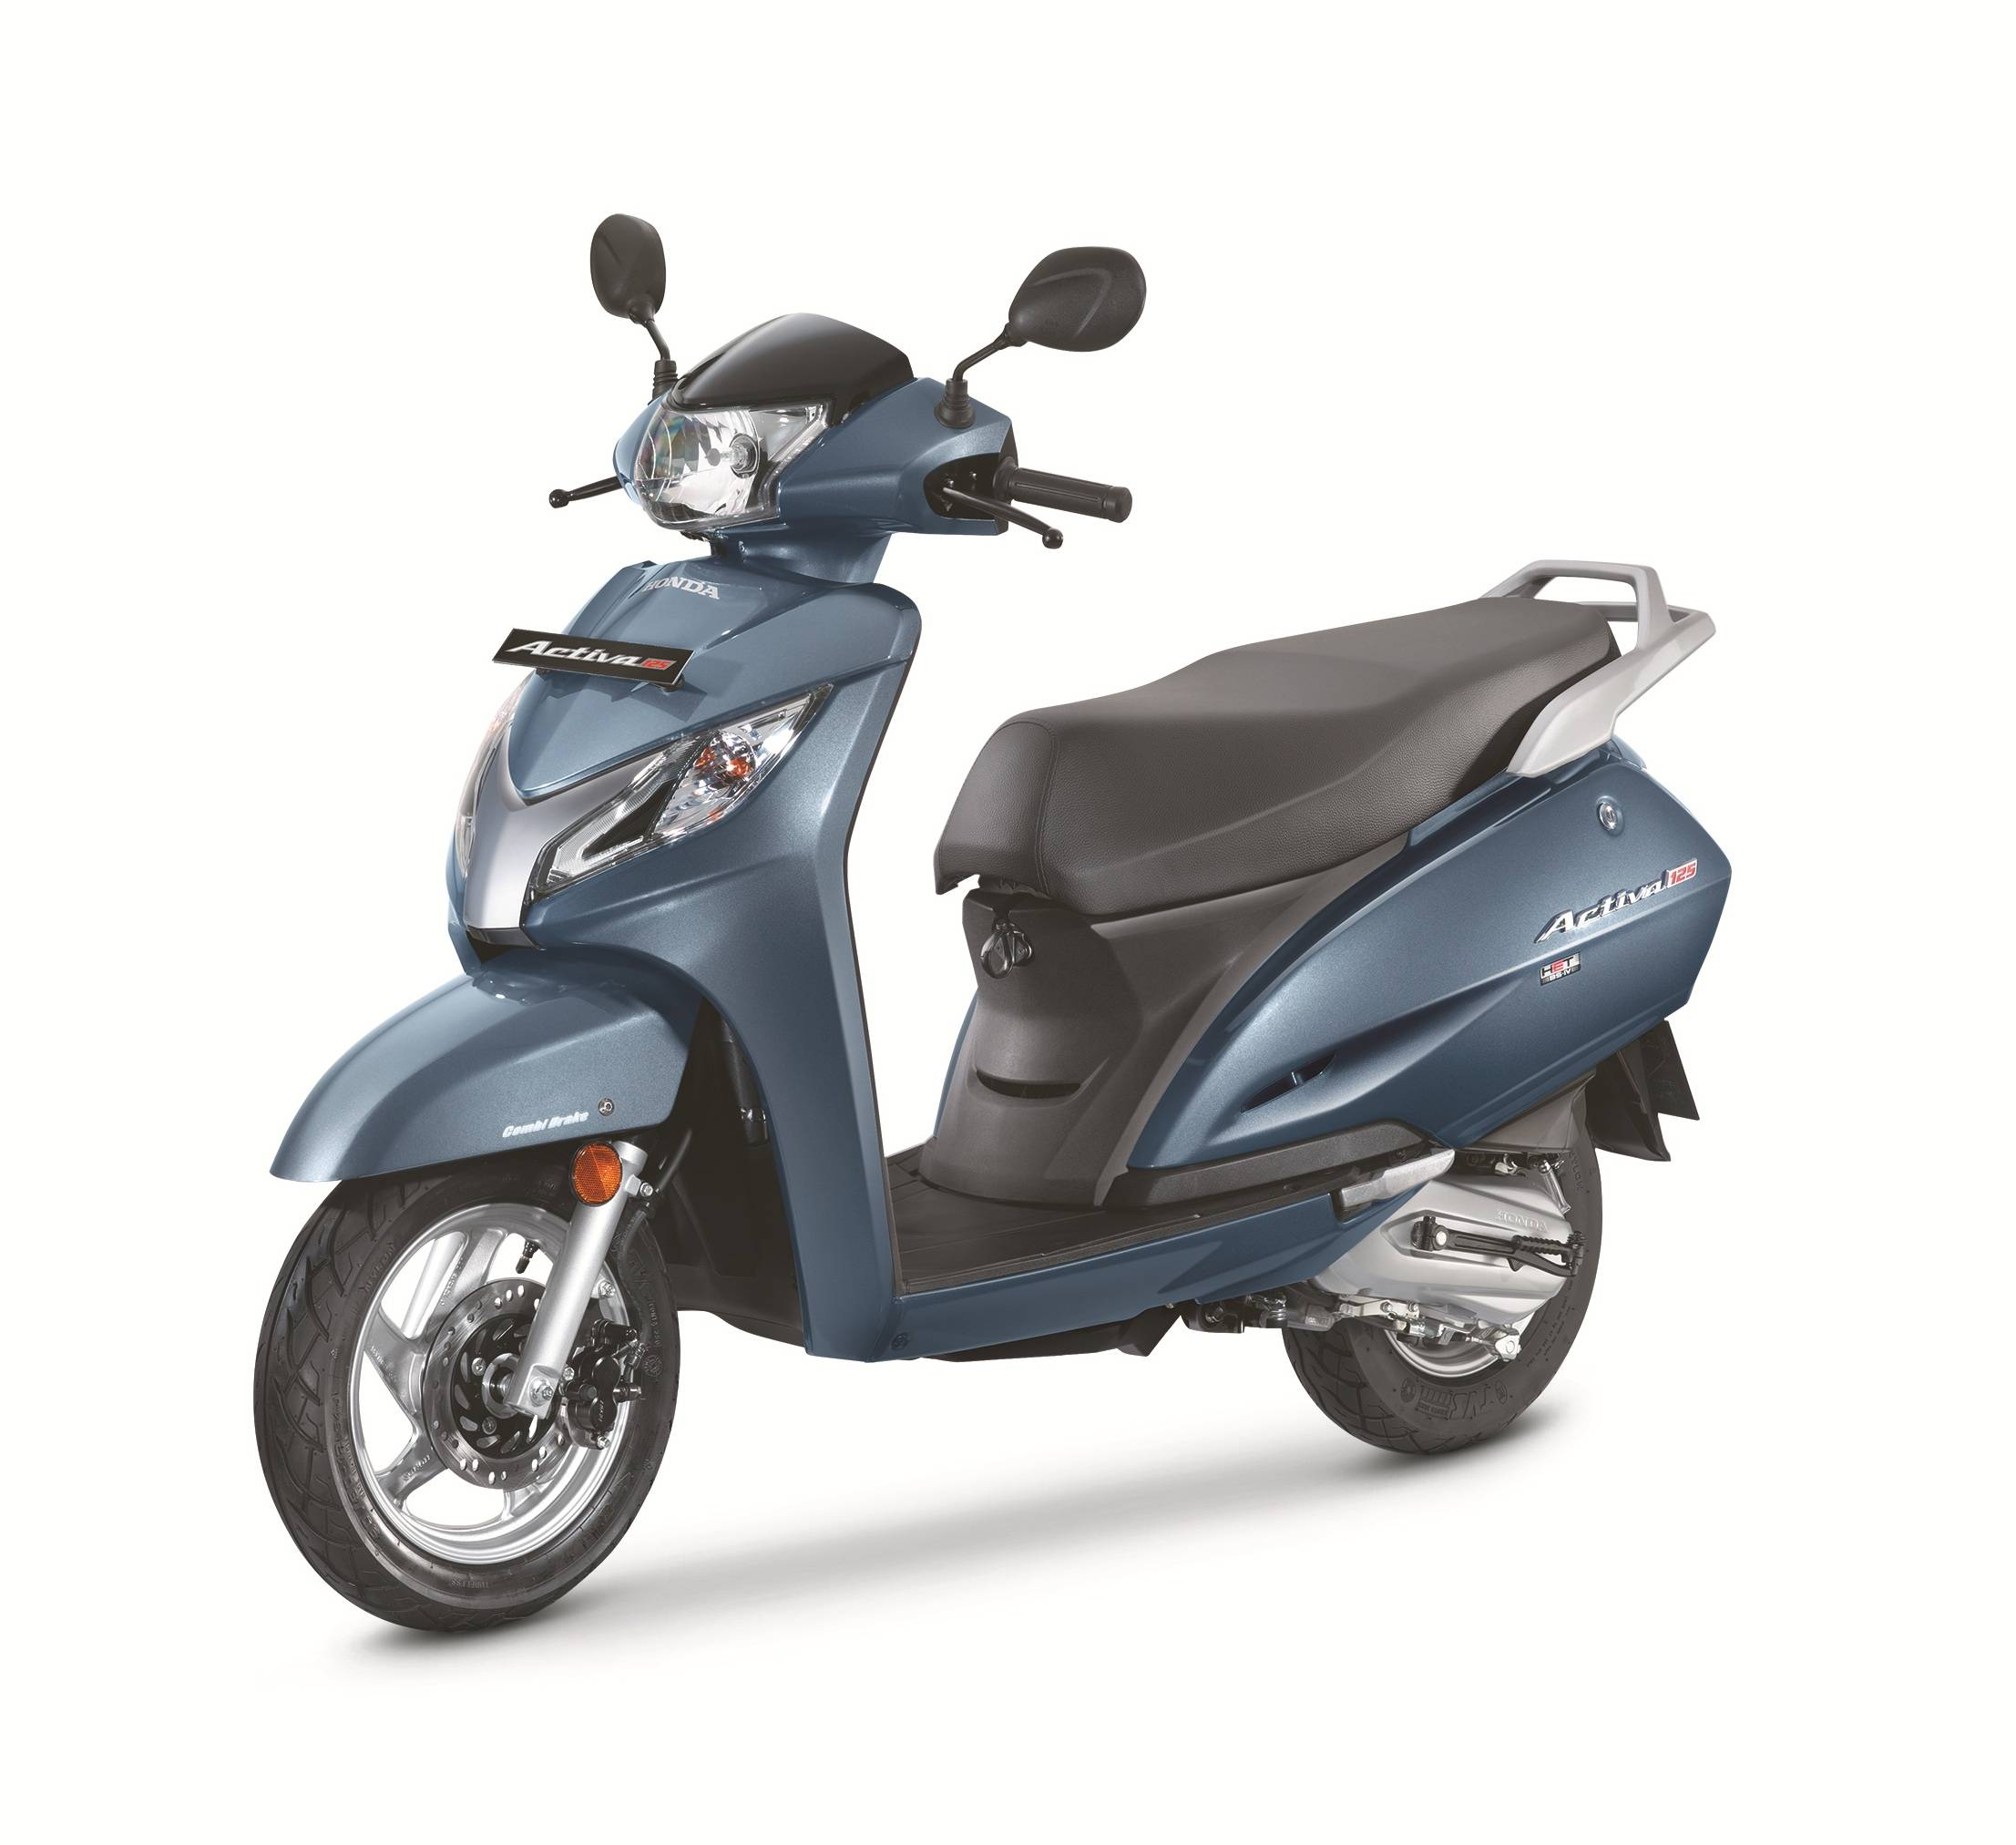 Into its 17th year the Activa continues to power ahead of the herd maintaining a gigantic lead over the next. The top seller priced at Rs 55,074 (ex-showroom, Mumbai) sold 2,759,835 units last financial year. Sold in three variants the Activa still carries a small waiting period in some markets.